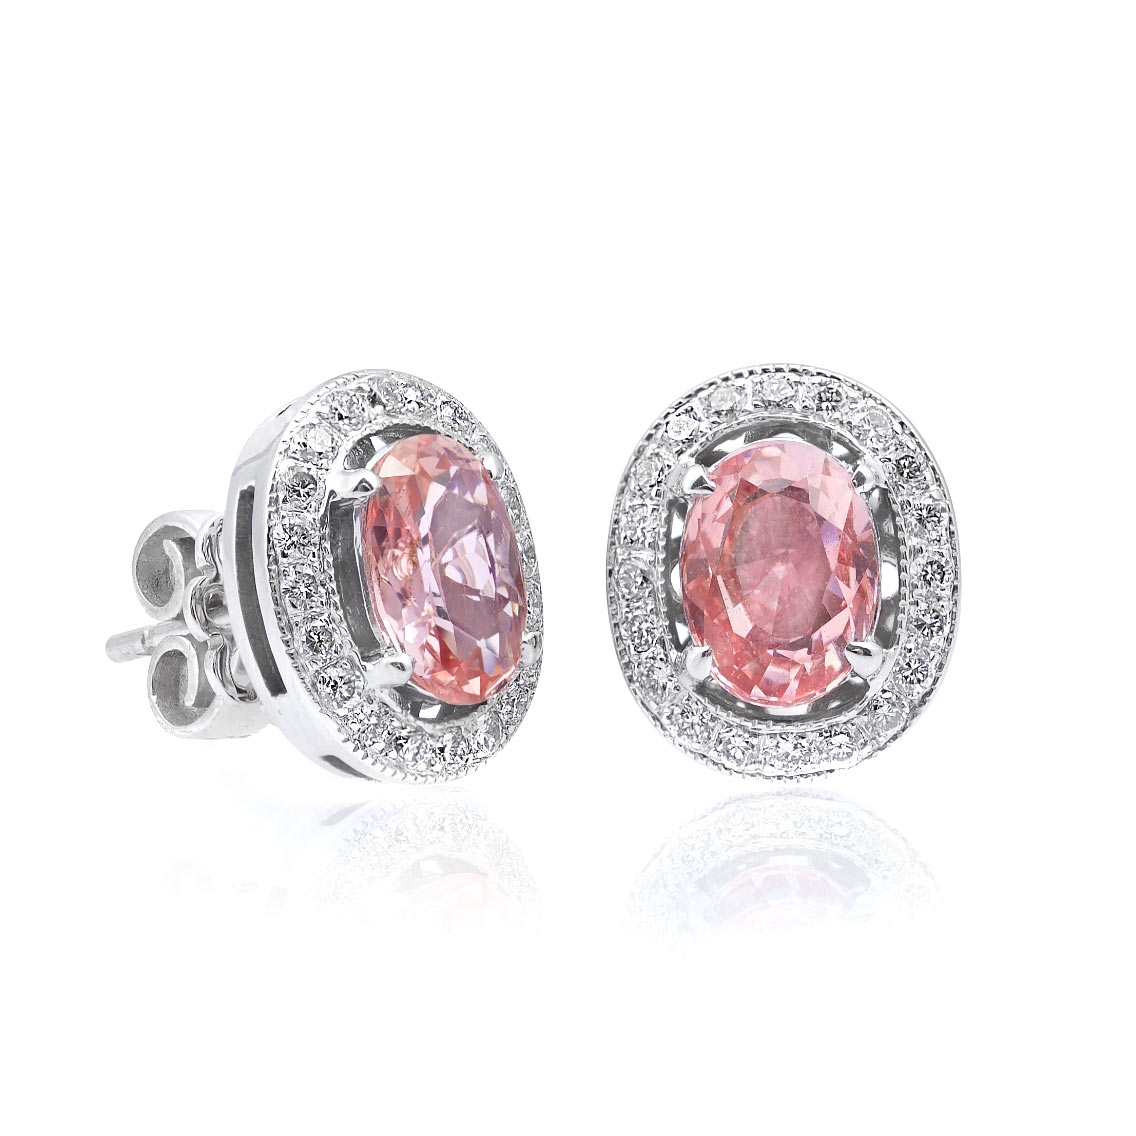 earrings online vvs padparadscha livemaster shipping for all with my sapphire shop making item handmade on germesgems jewelry